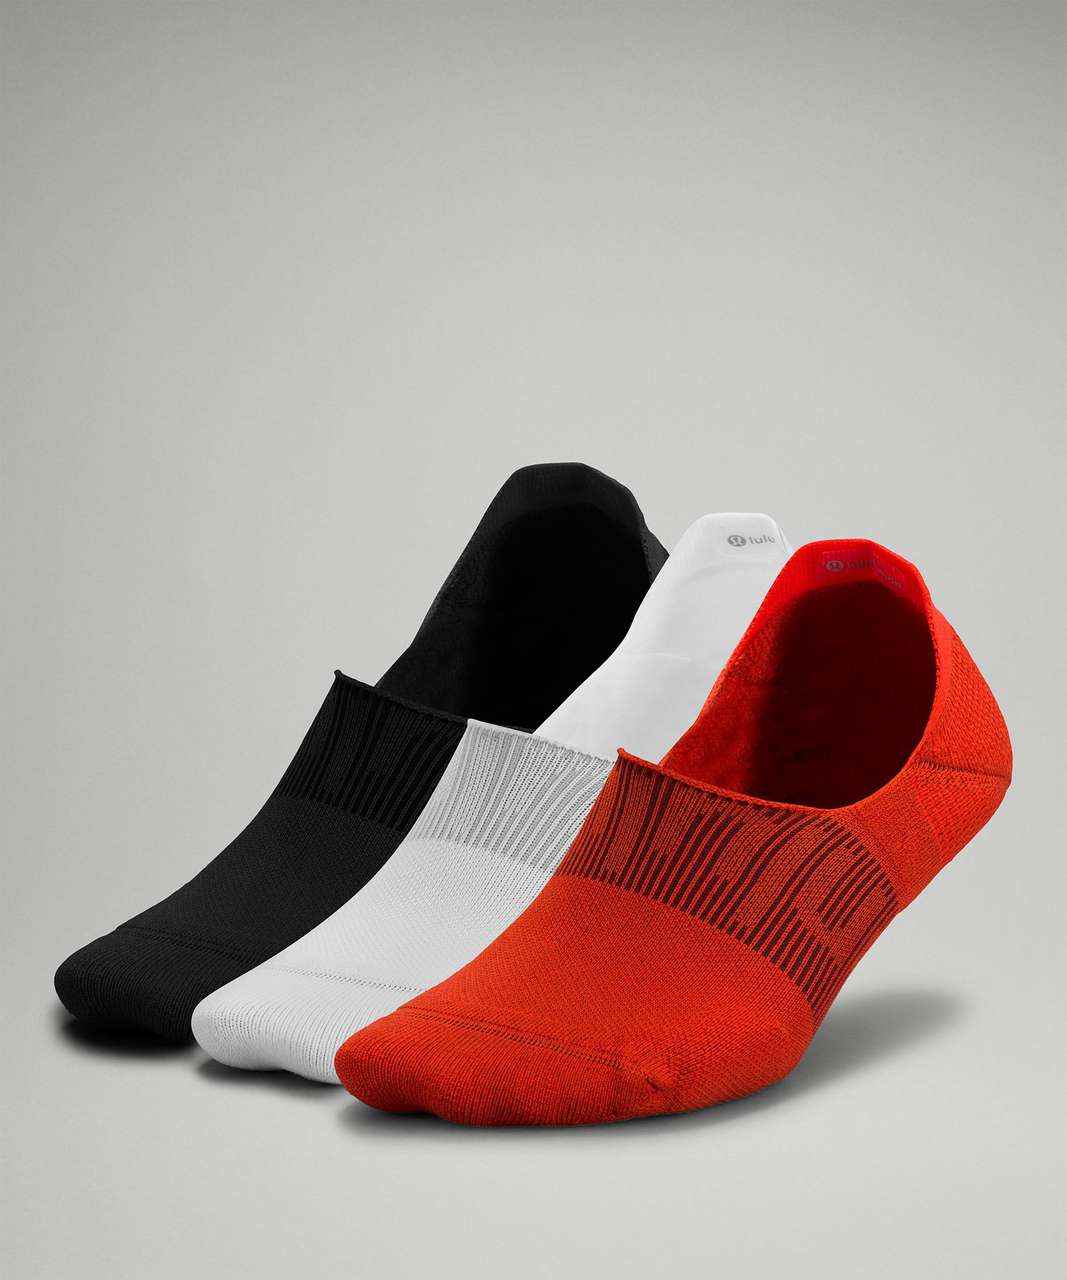 Lululemon Power Stride No-Show Sock with Active Grip *3 Pack - Autumn Red / White / Black